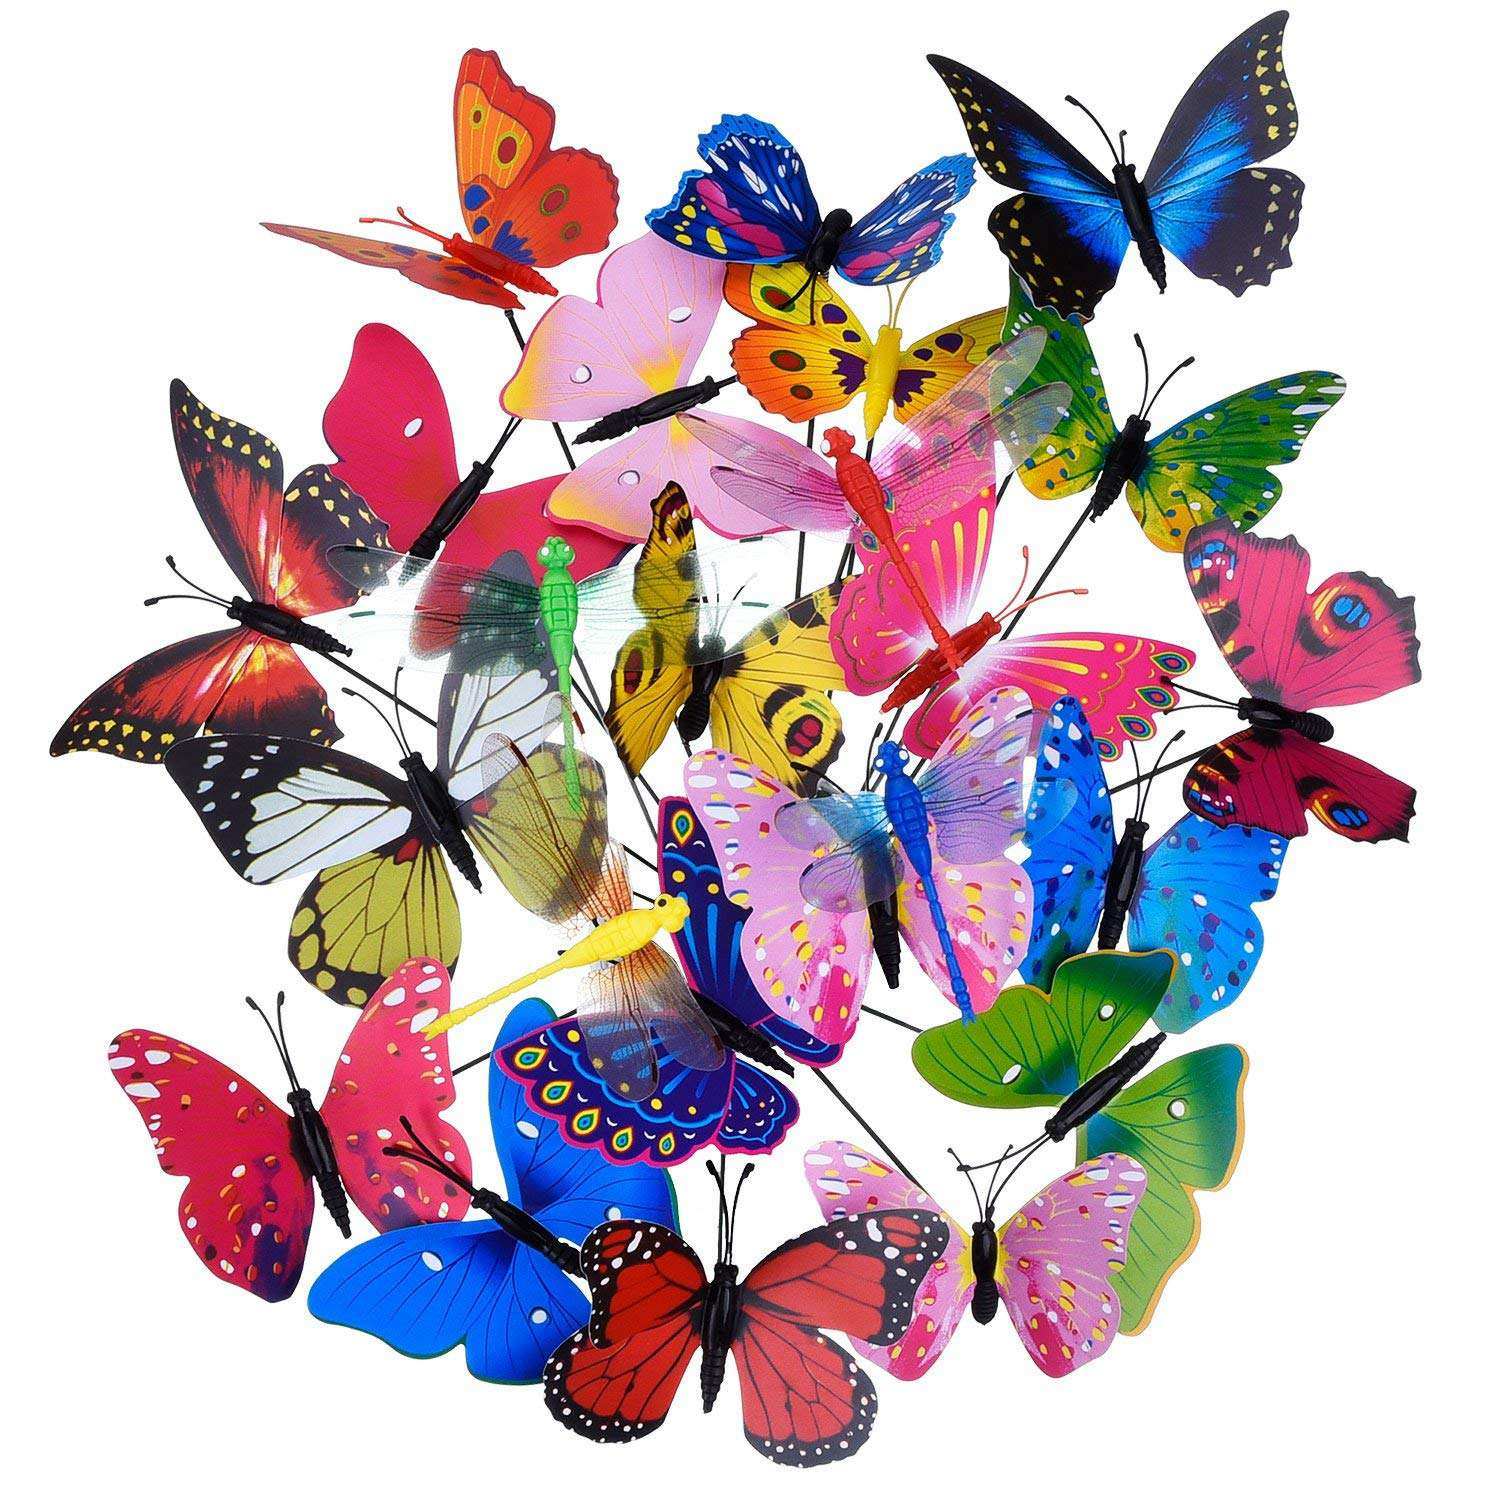 20 Pieces Garden Butterflies Stakes And 4 Pieces Dragonflies Stakes Garden Ornaments For Yard Patio Party Decorations For Plant